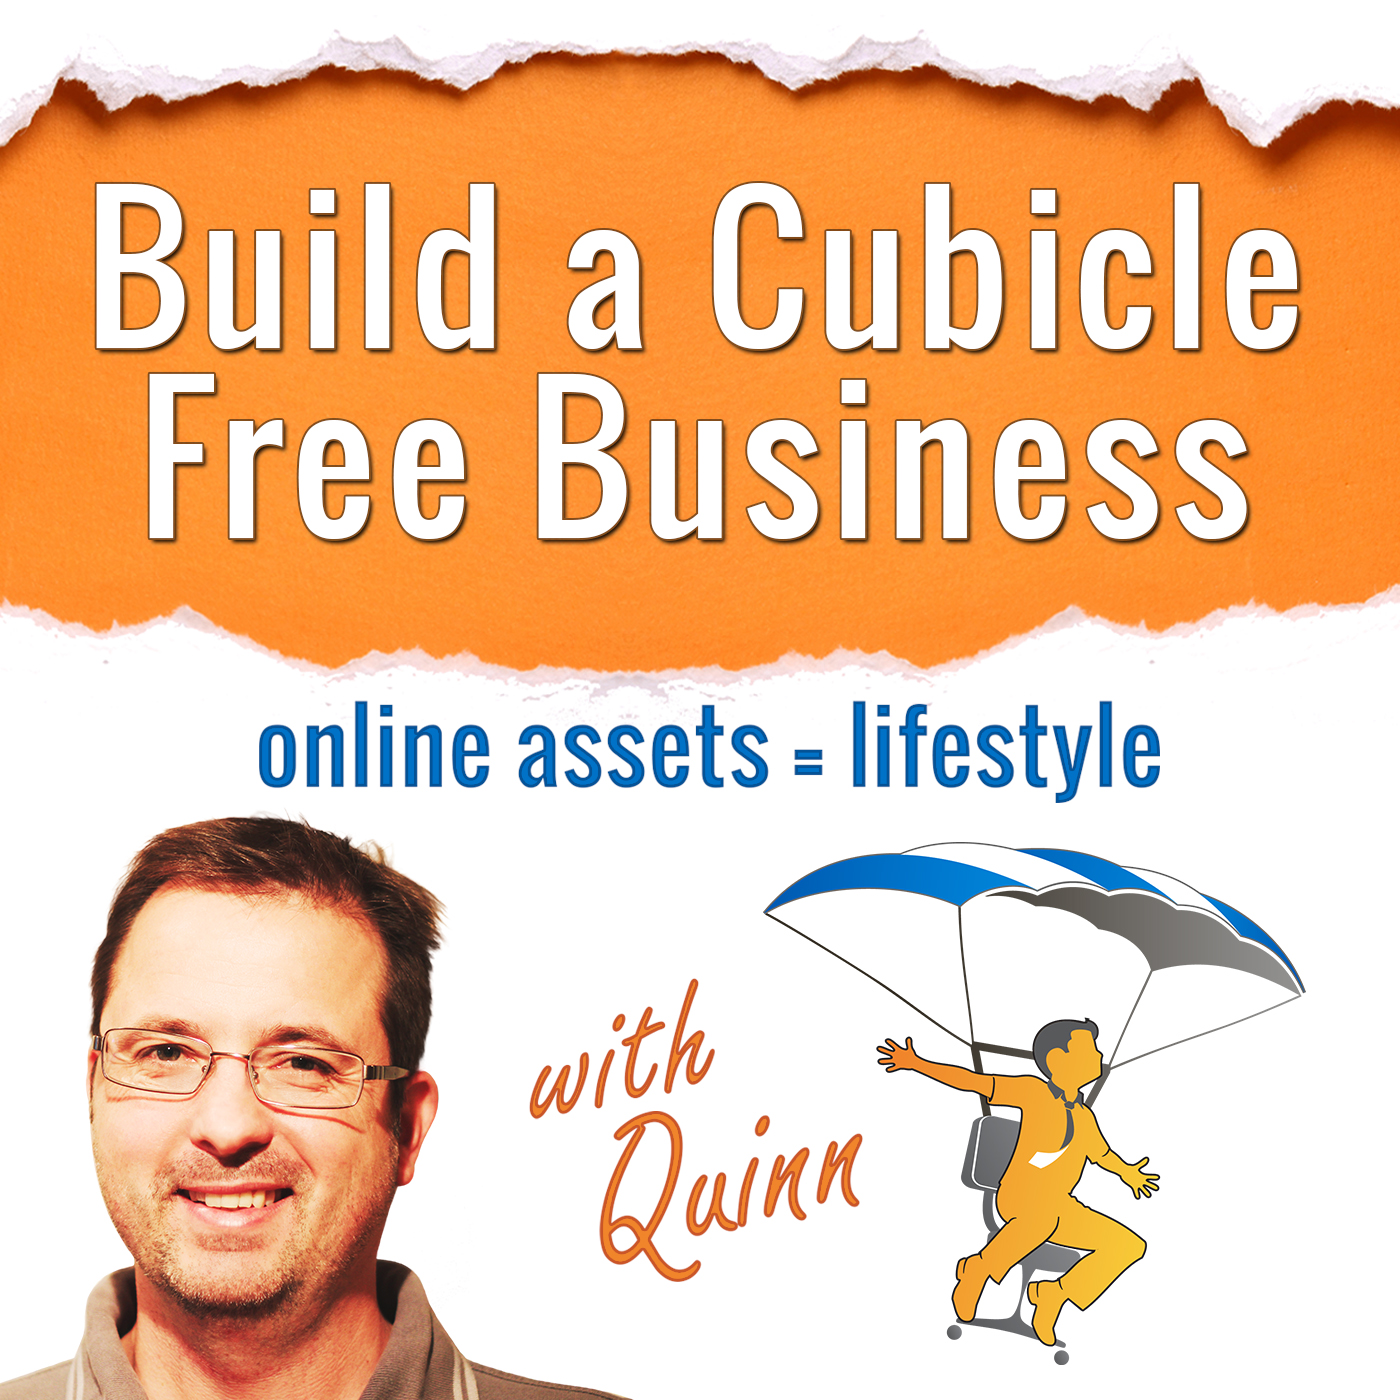 Build a Cubicle Free Business Podcast